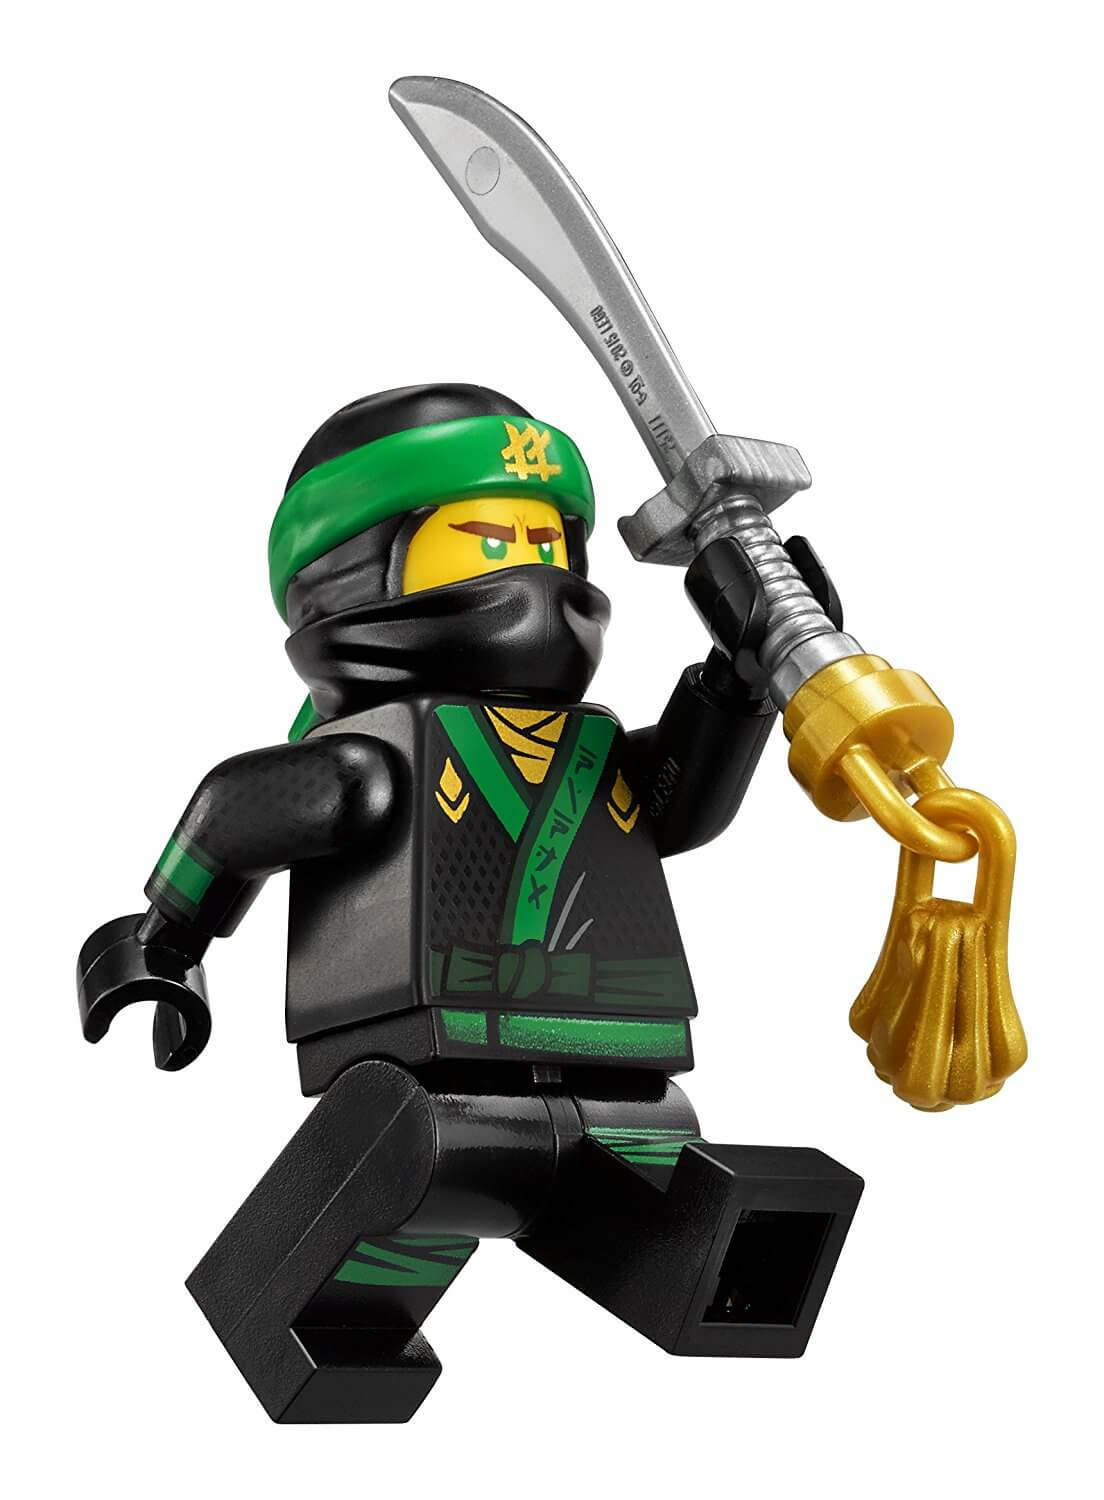 Lego ninjago movie 70612 green ninja mech dragon toy the - Lego ninjago ninja ...